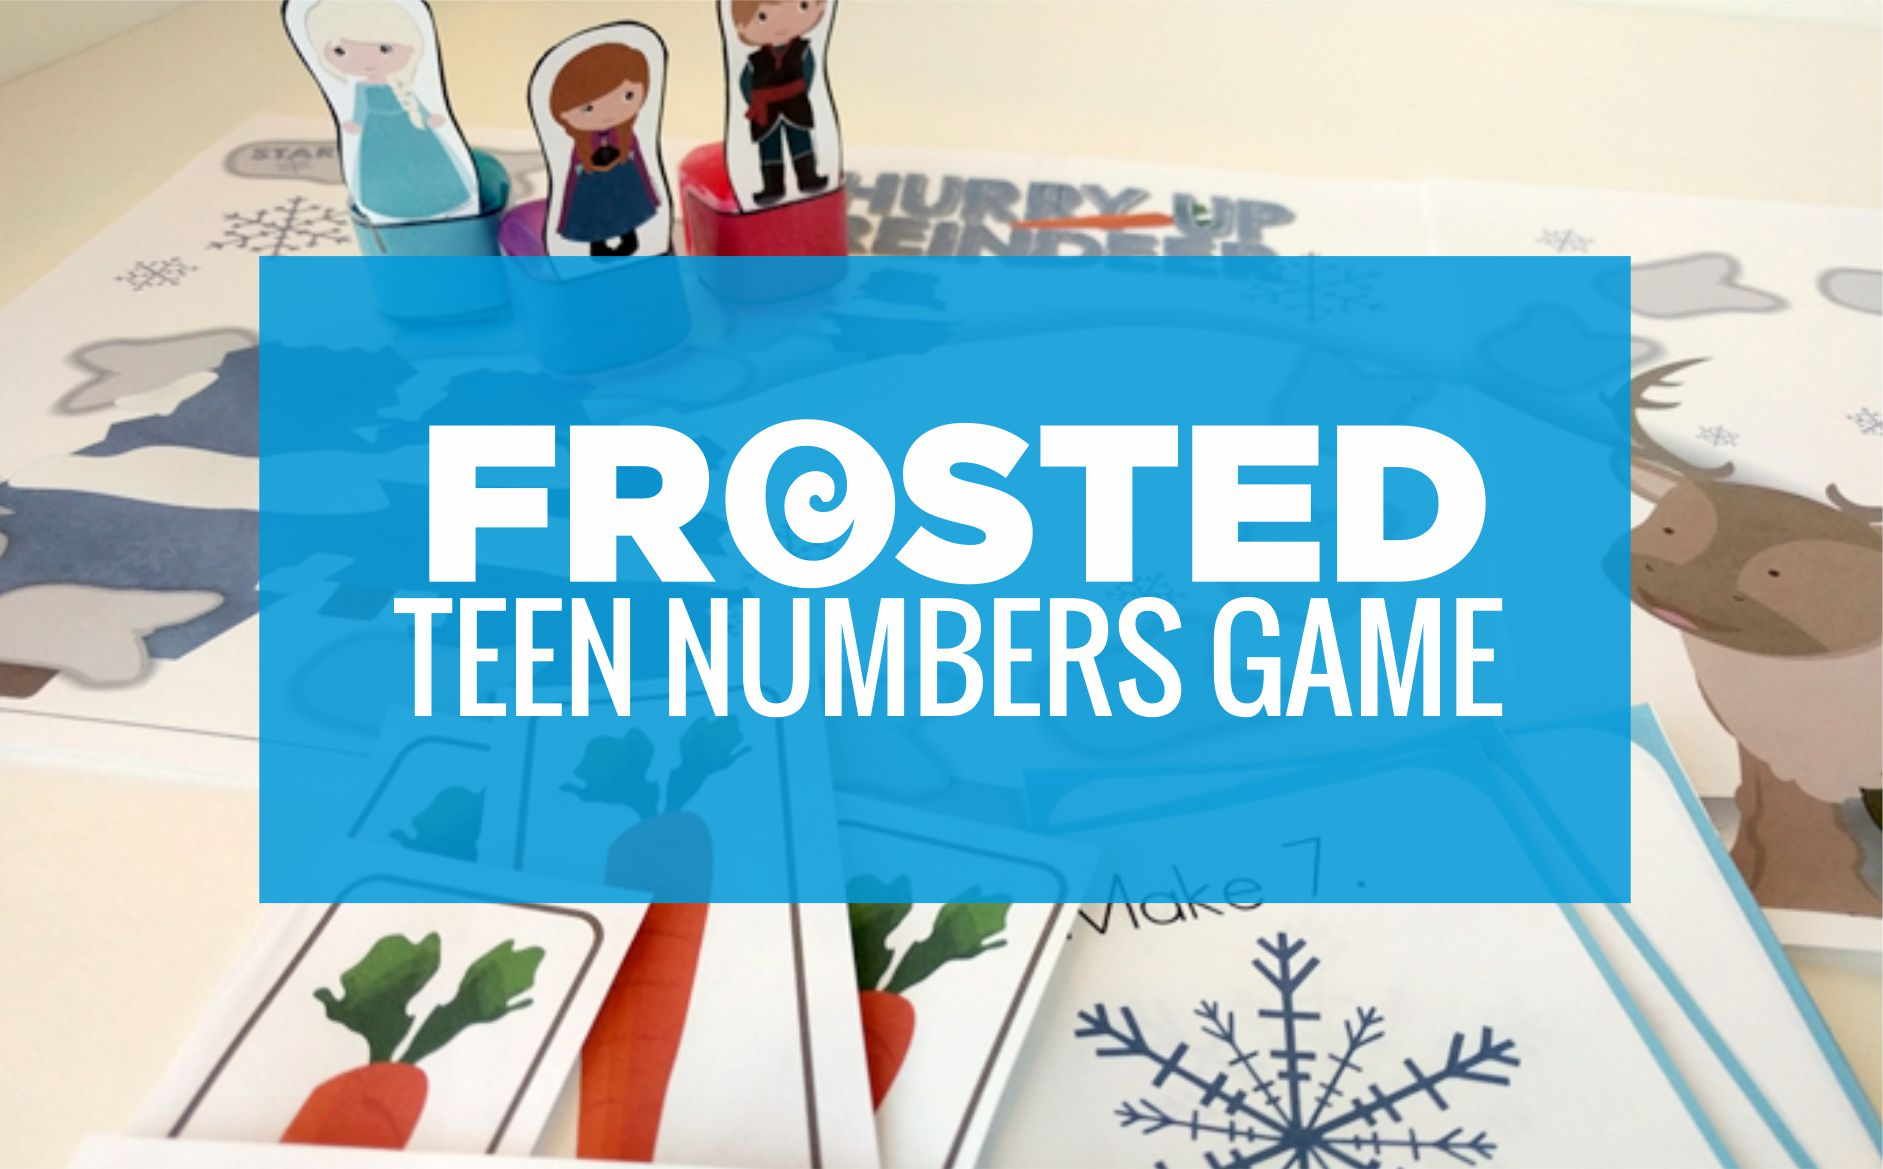 Frosted Frozen Teen Numbers Game